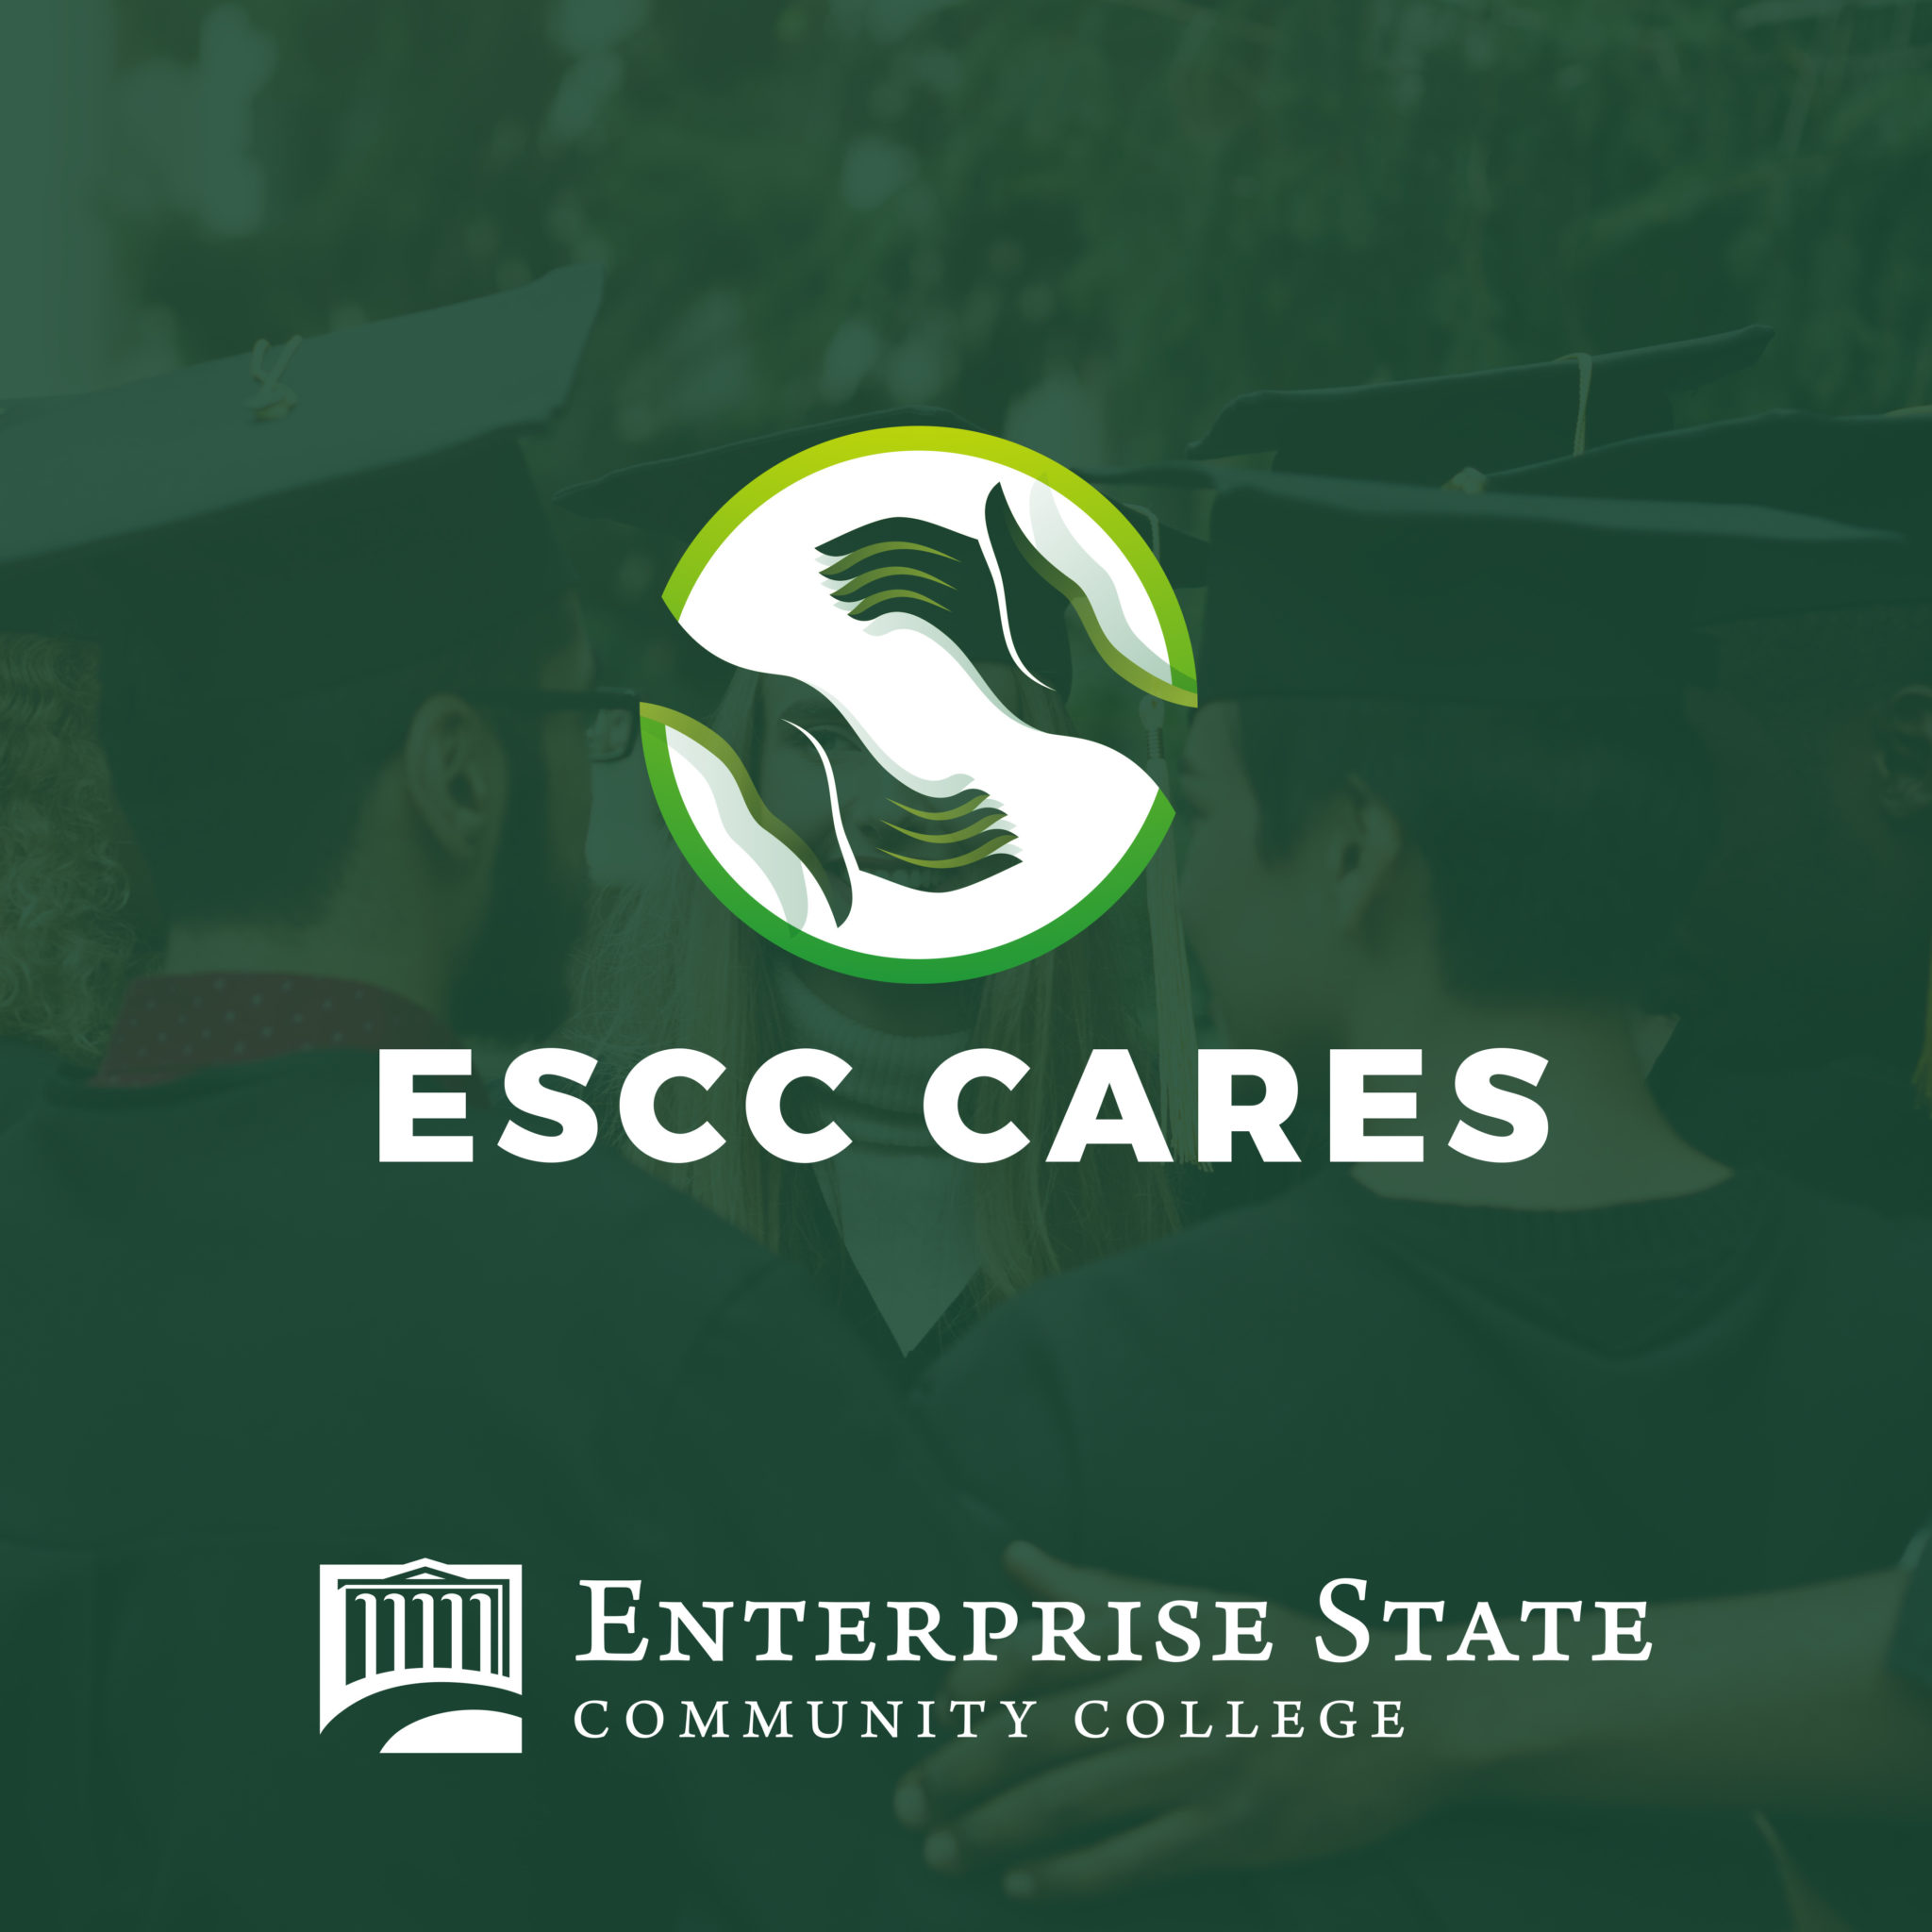 ESCC/AAC students to receive CARES funds